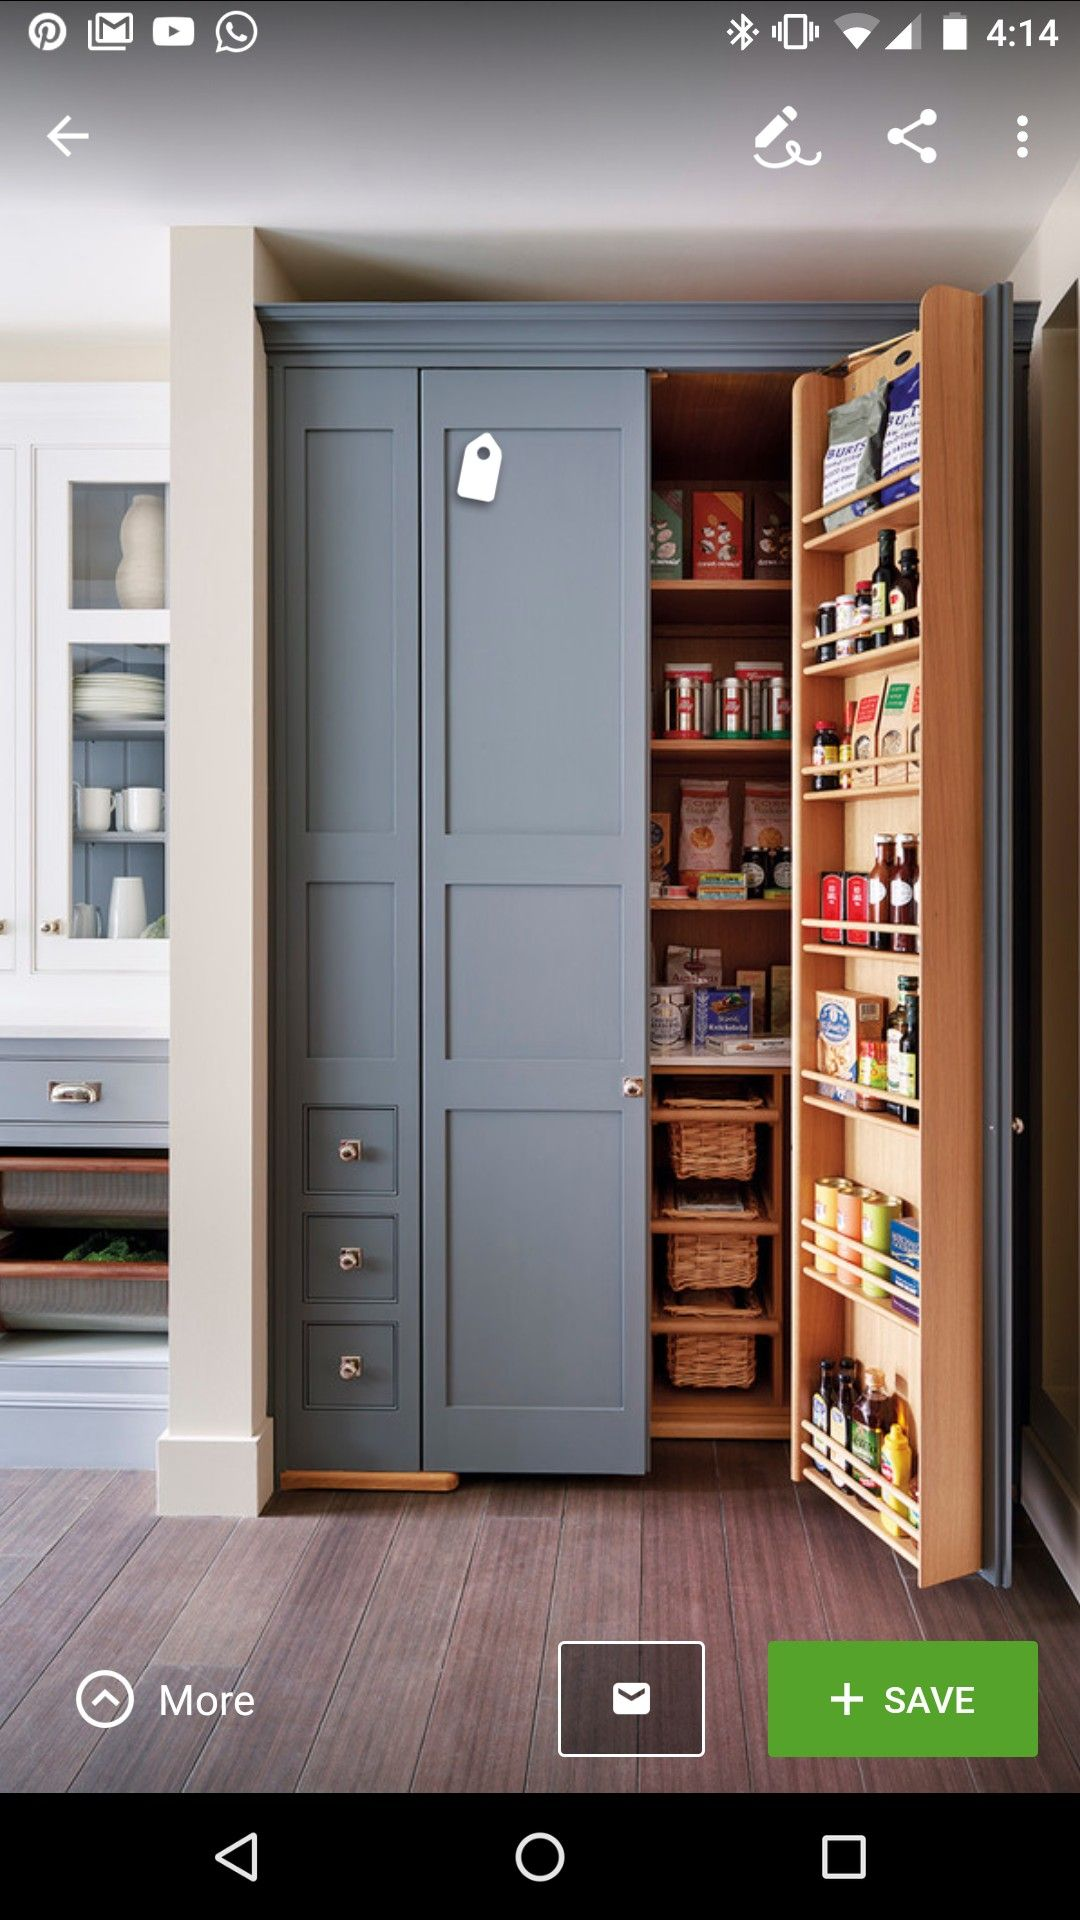 Food pantry storage on door | Riggs Inspiration Board | Pinterest ...